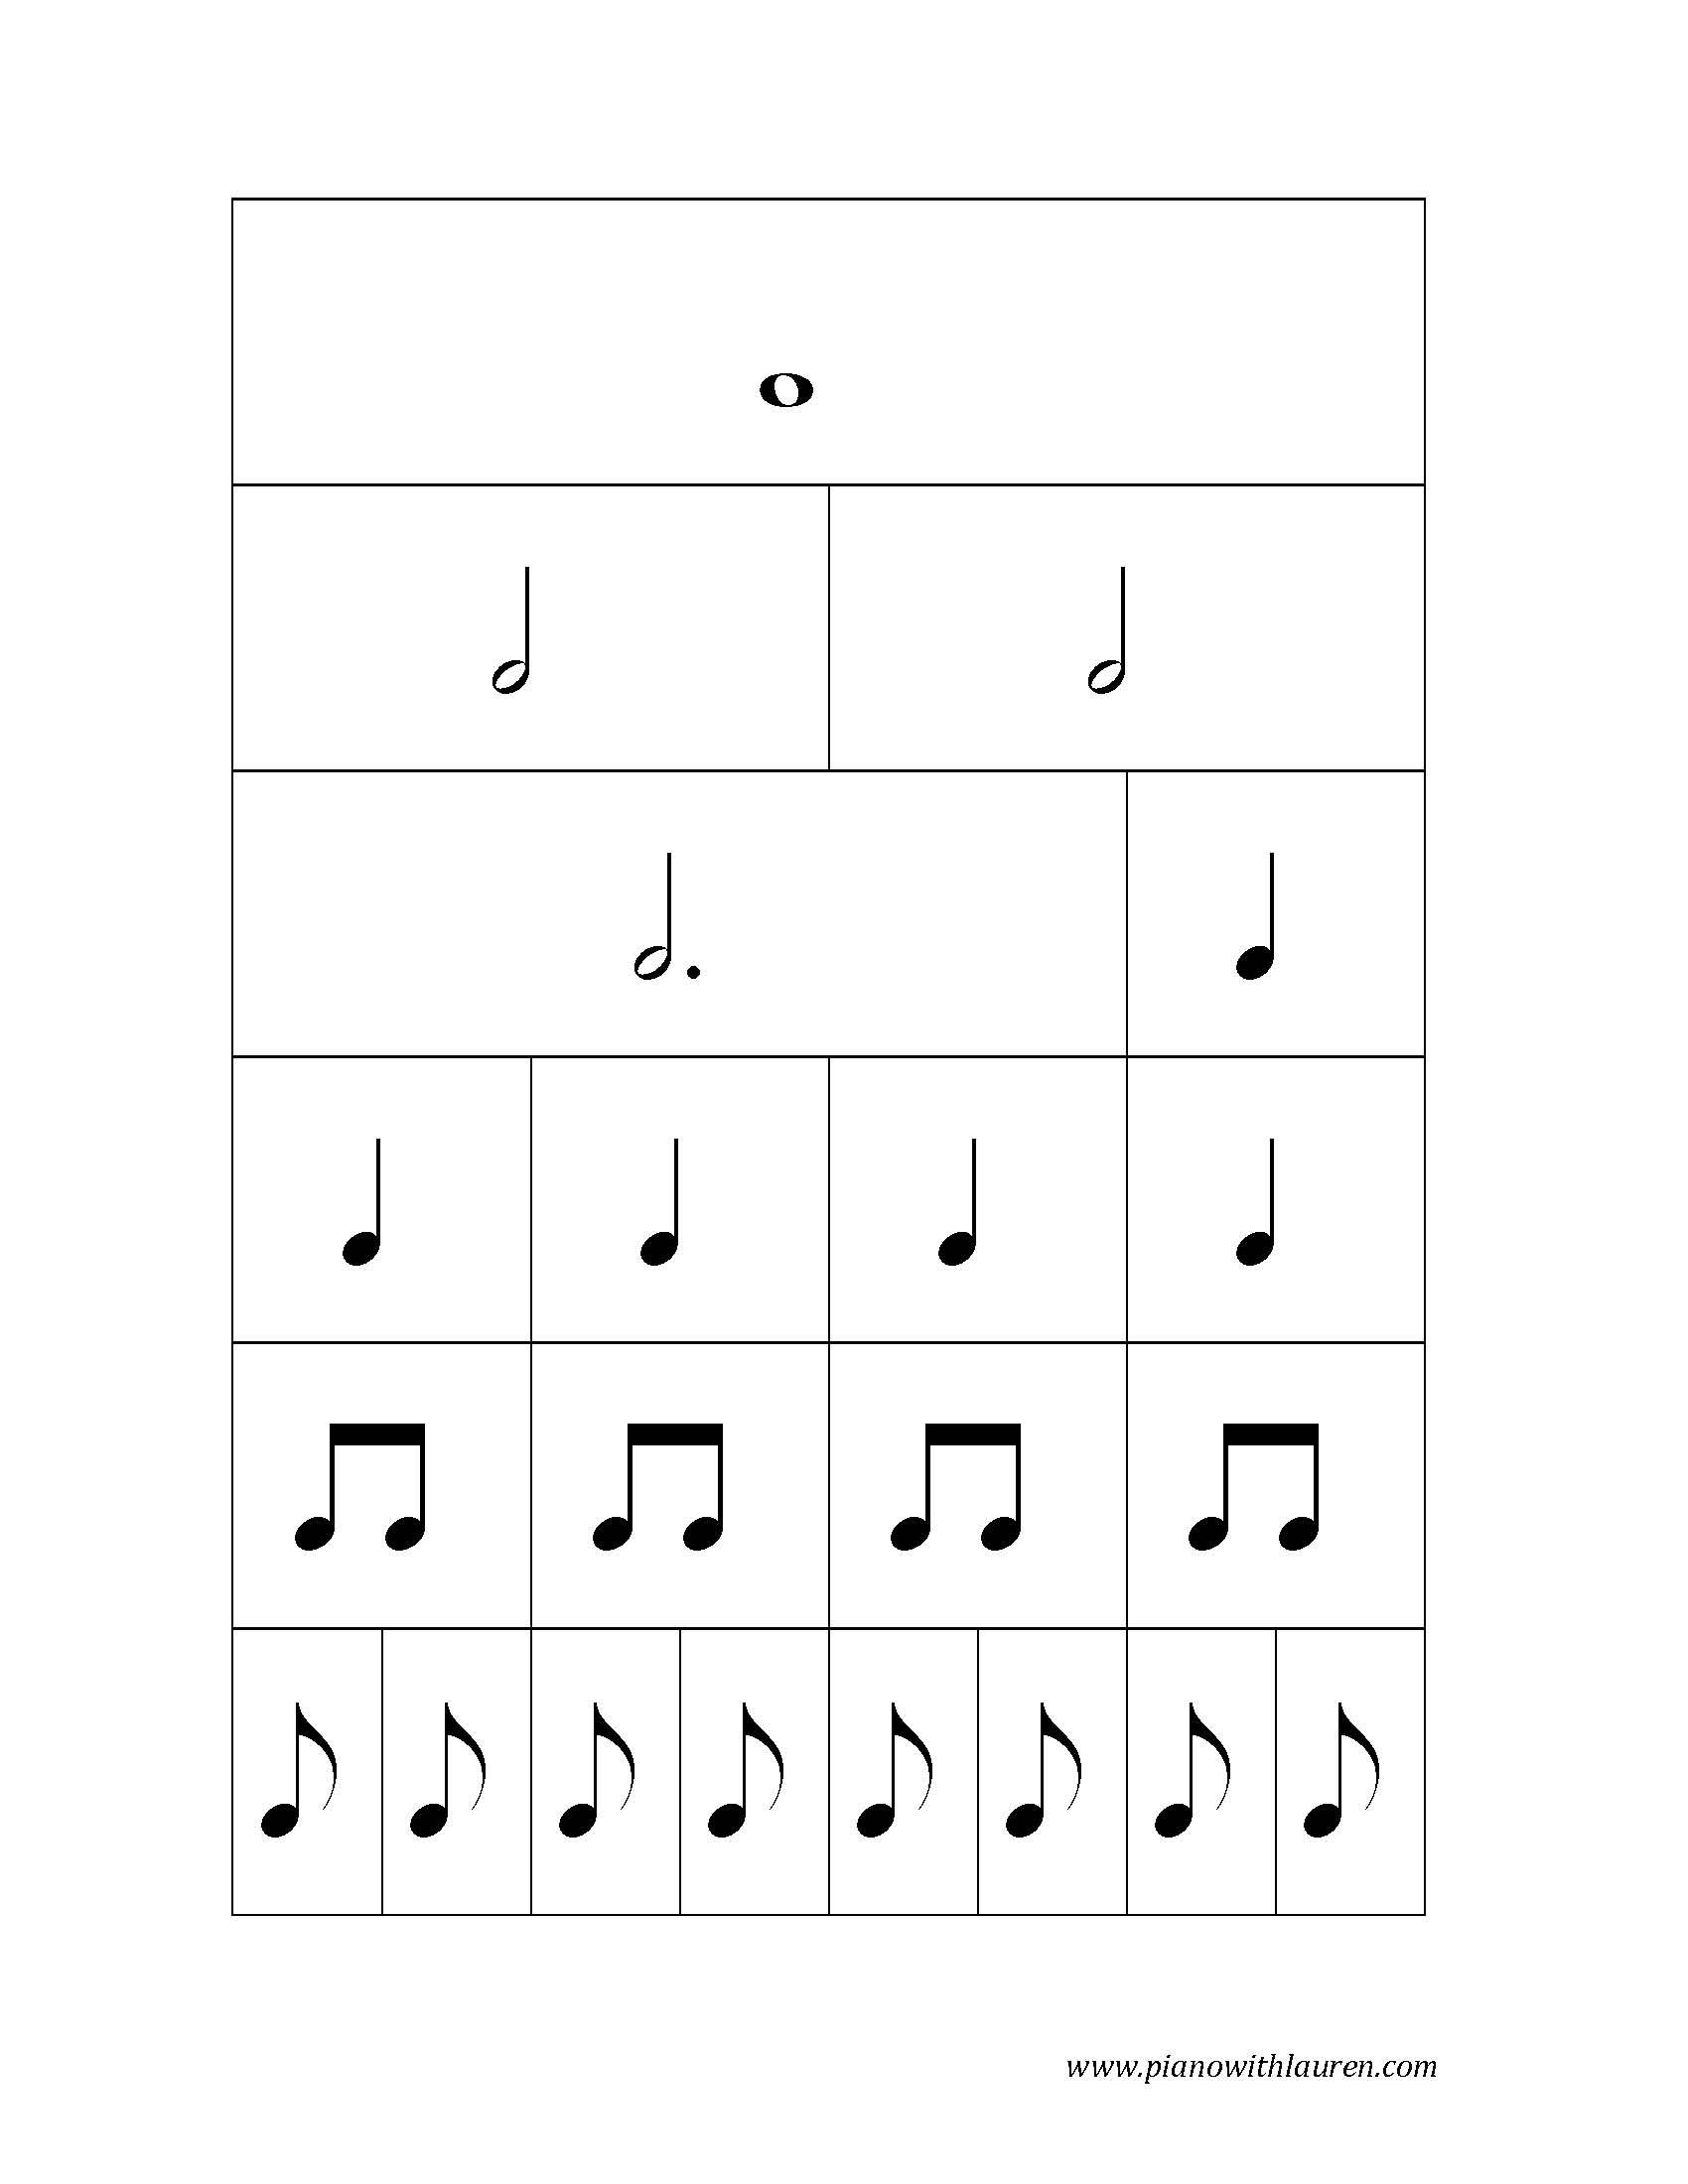 Printable Note Vales Cards (PDF Download) | Piano with Lauren